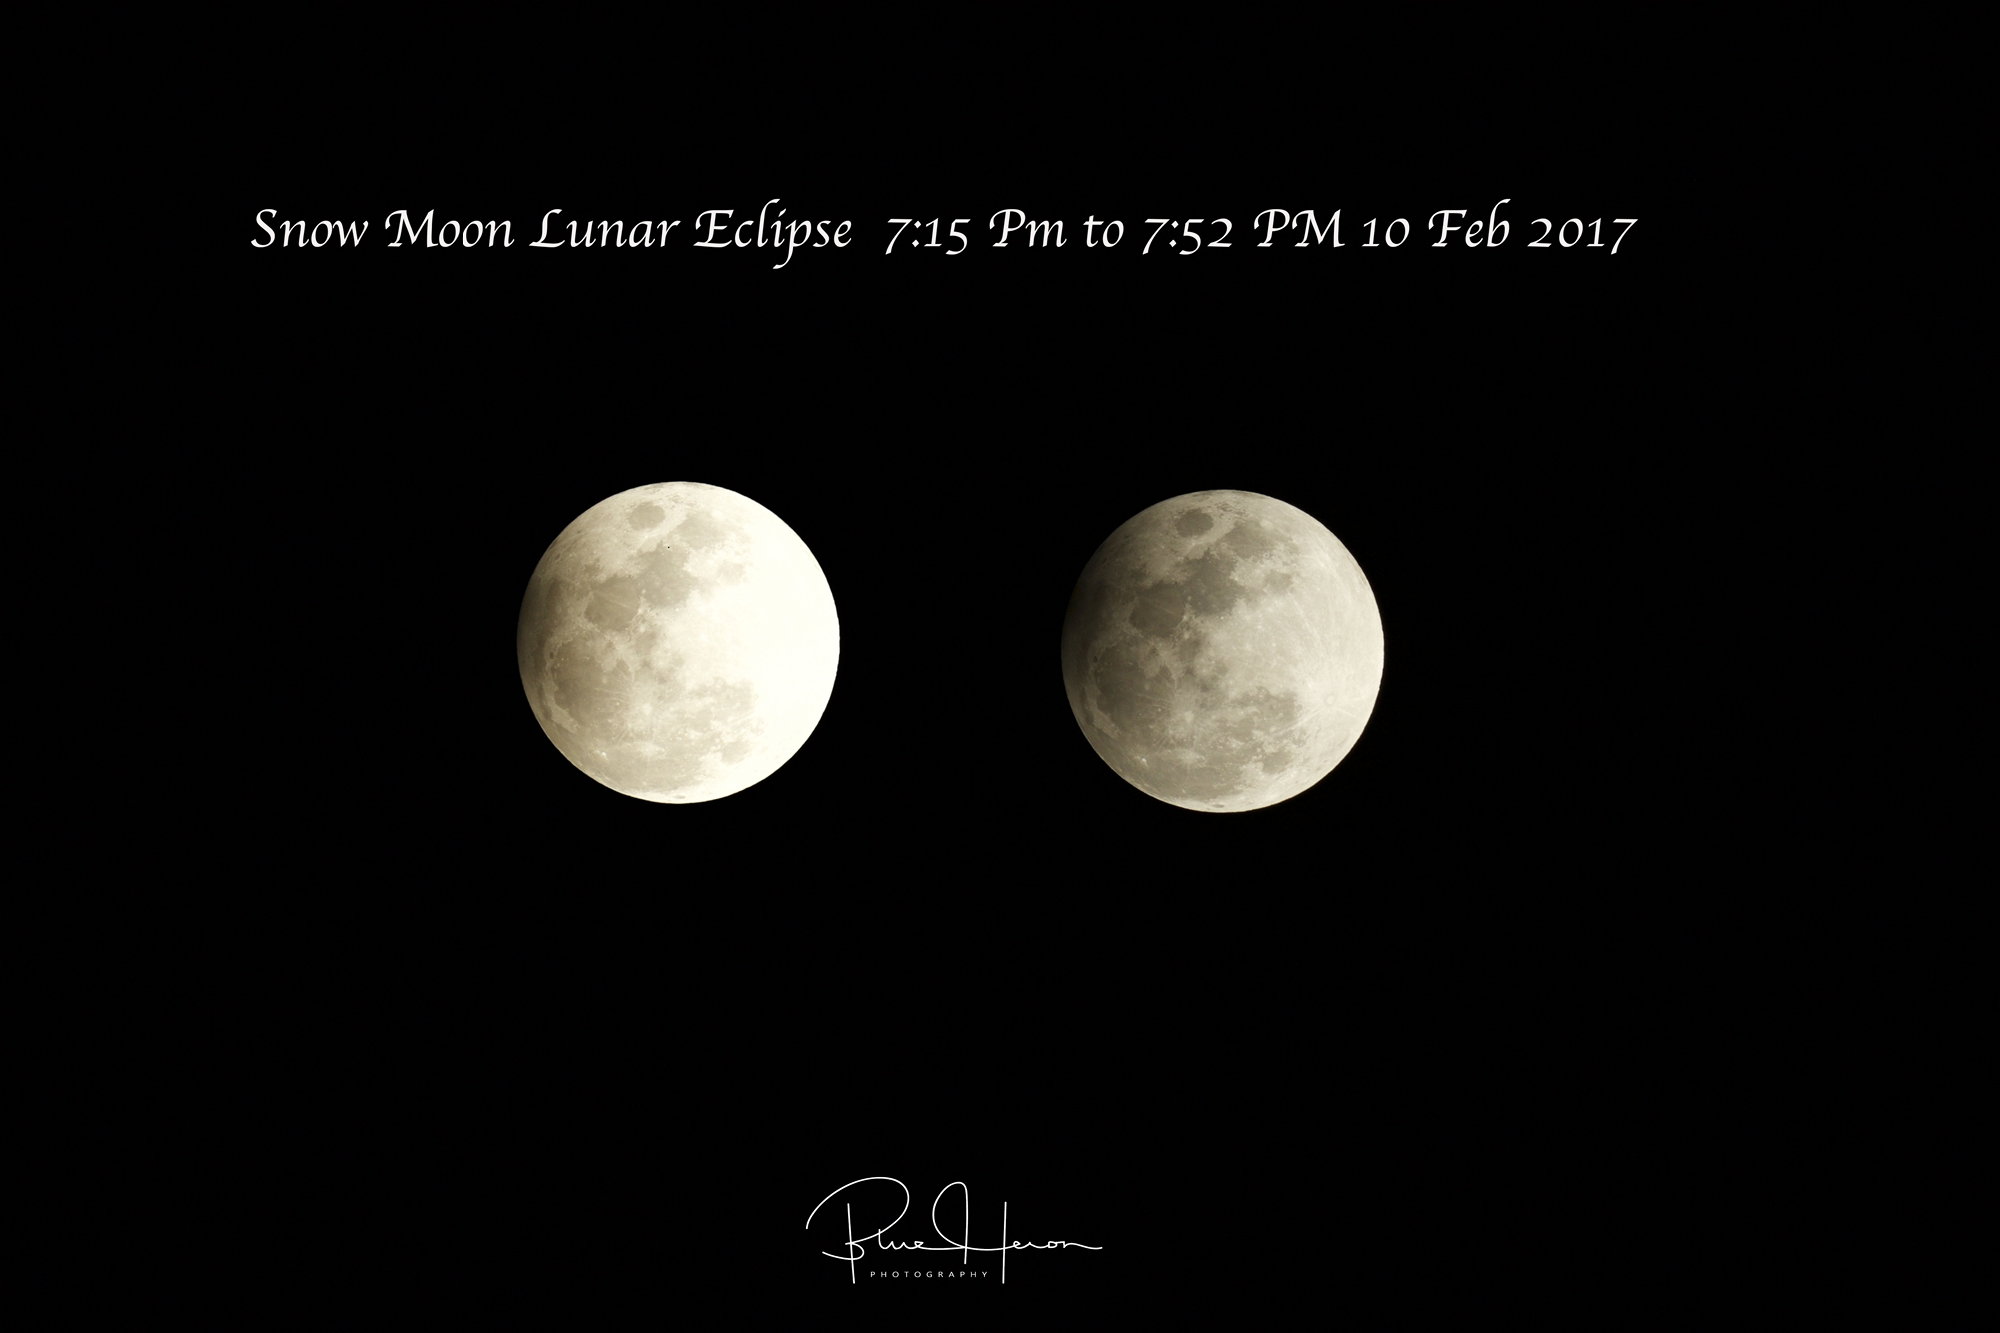 Snow Moon Lunar Eclipse peaked at 7:43PM Eastern..this series shows from 7:15 PM to 7:52 PM